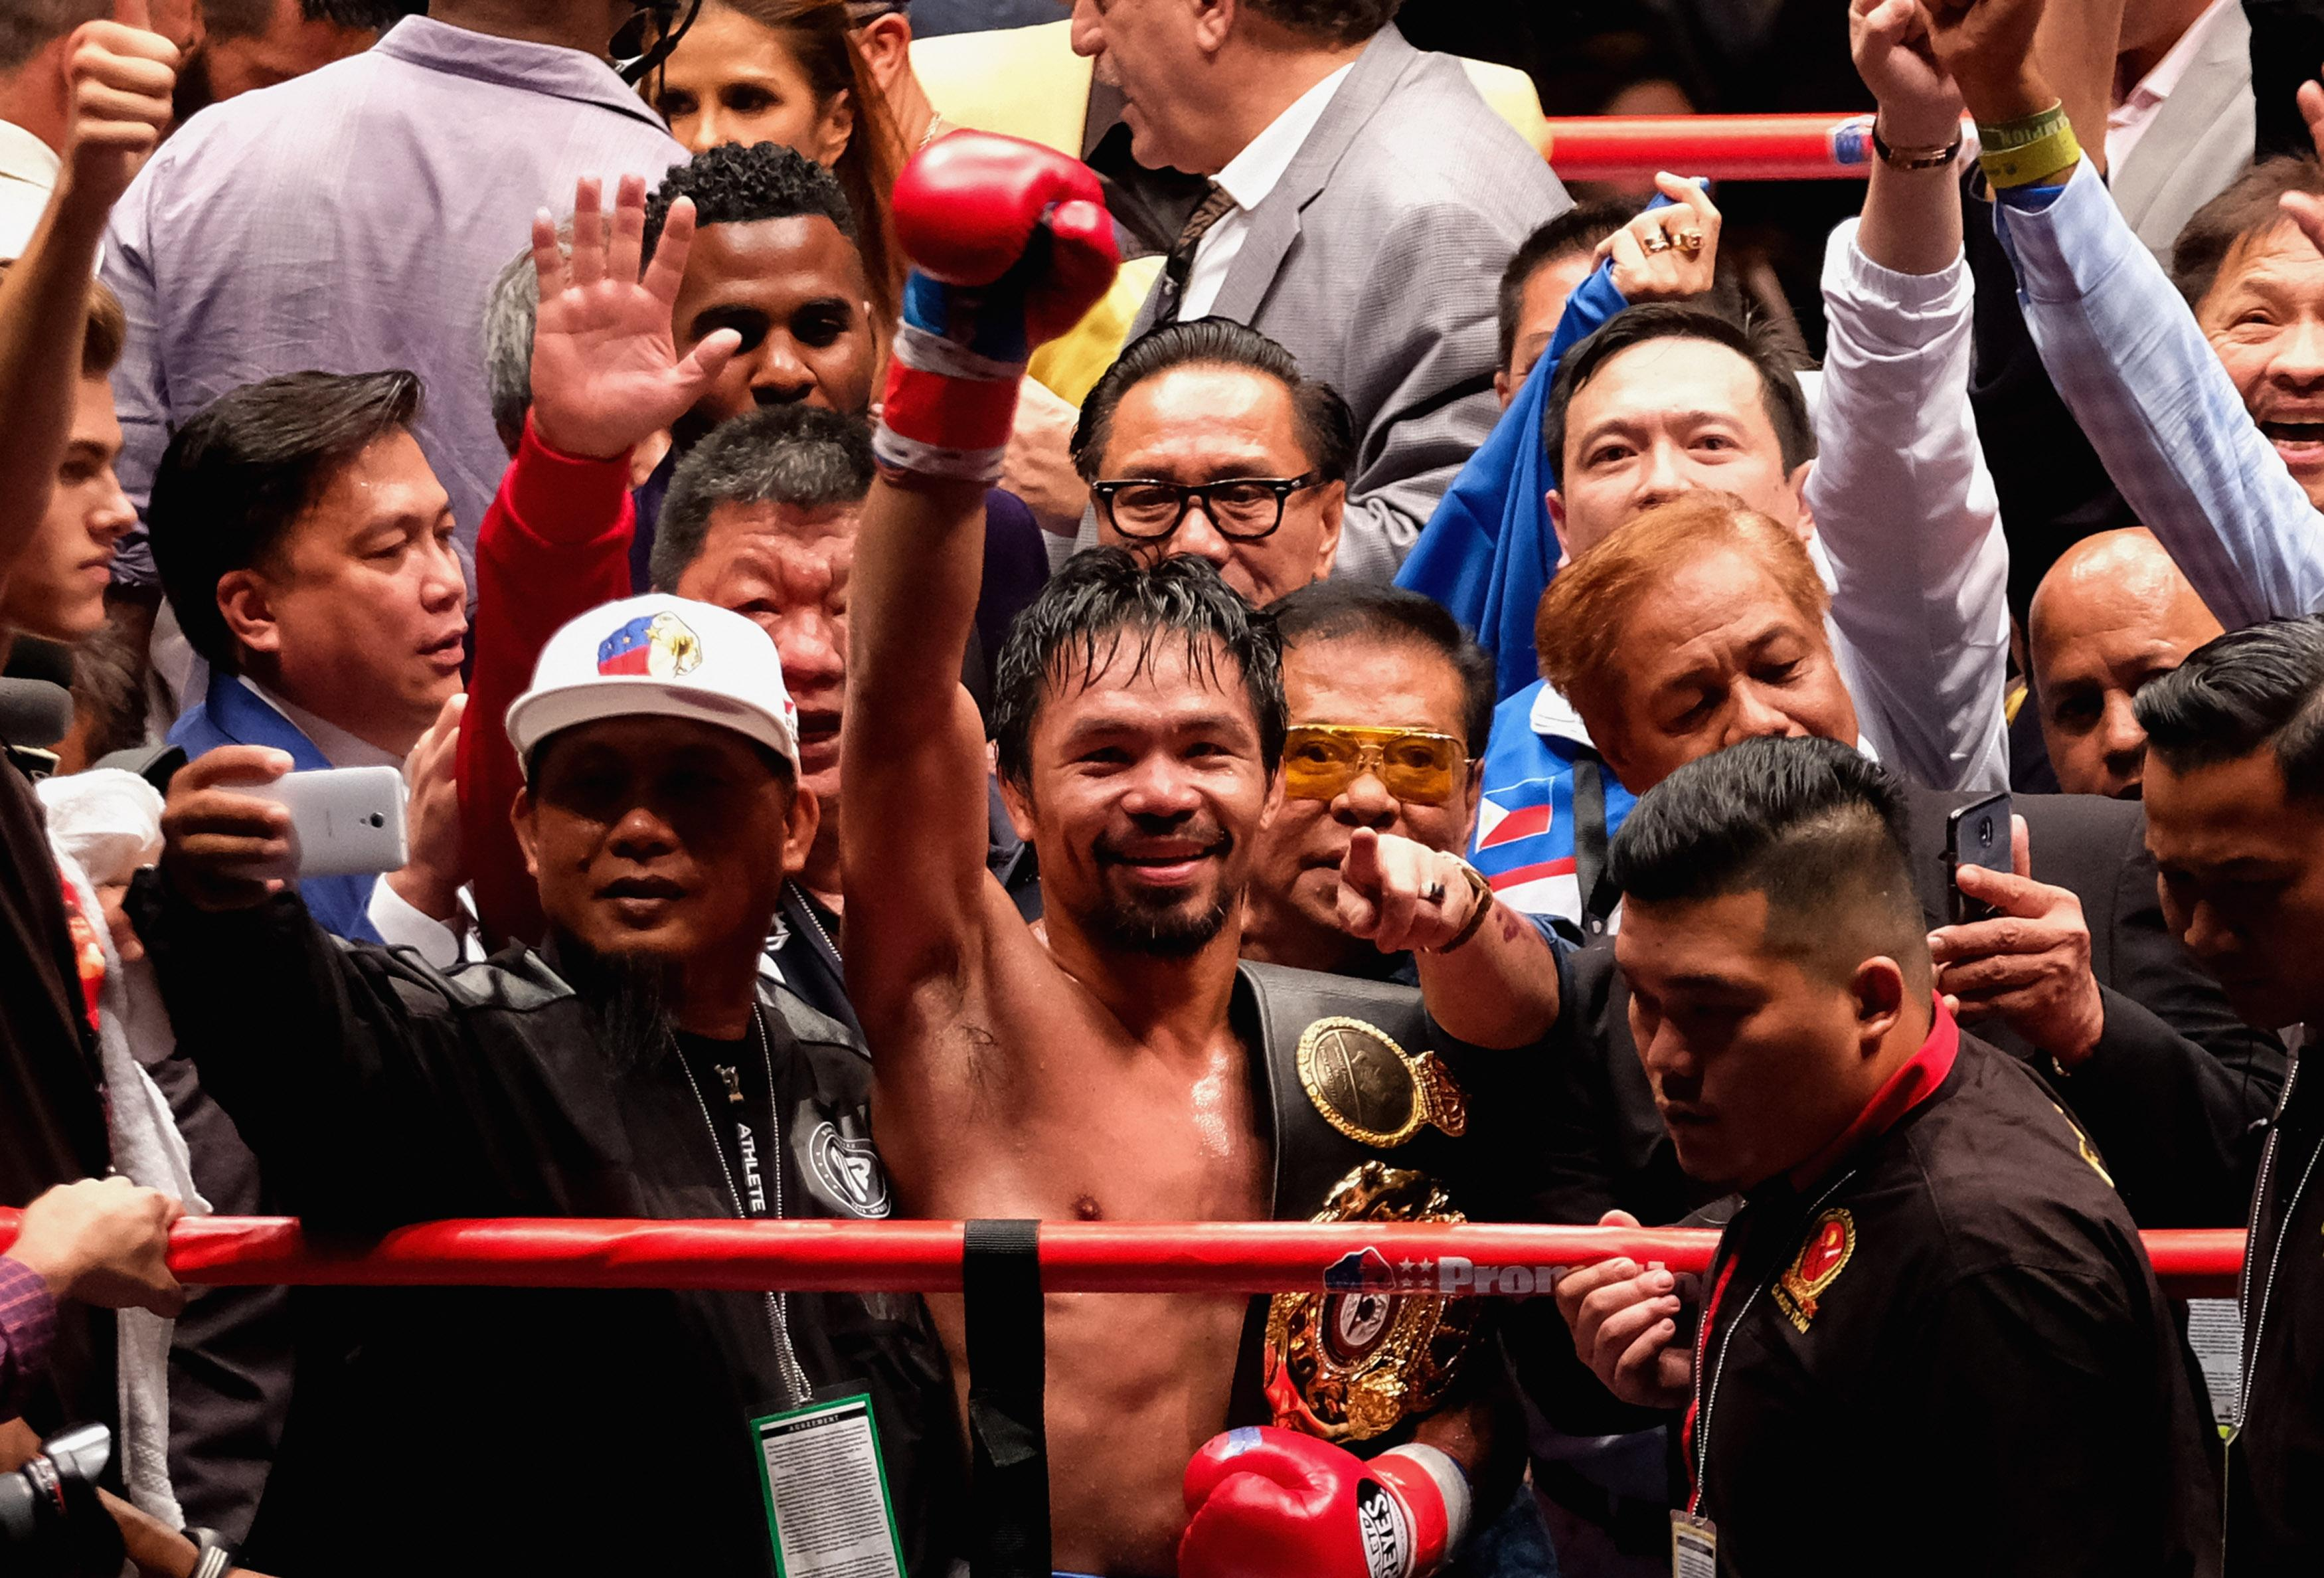 Manny Pacquiao rolled back the years to become an 11-time world champion this morning